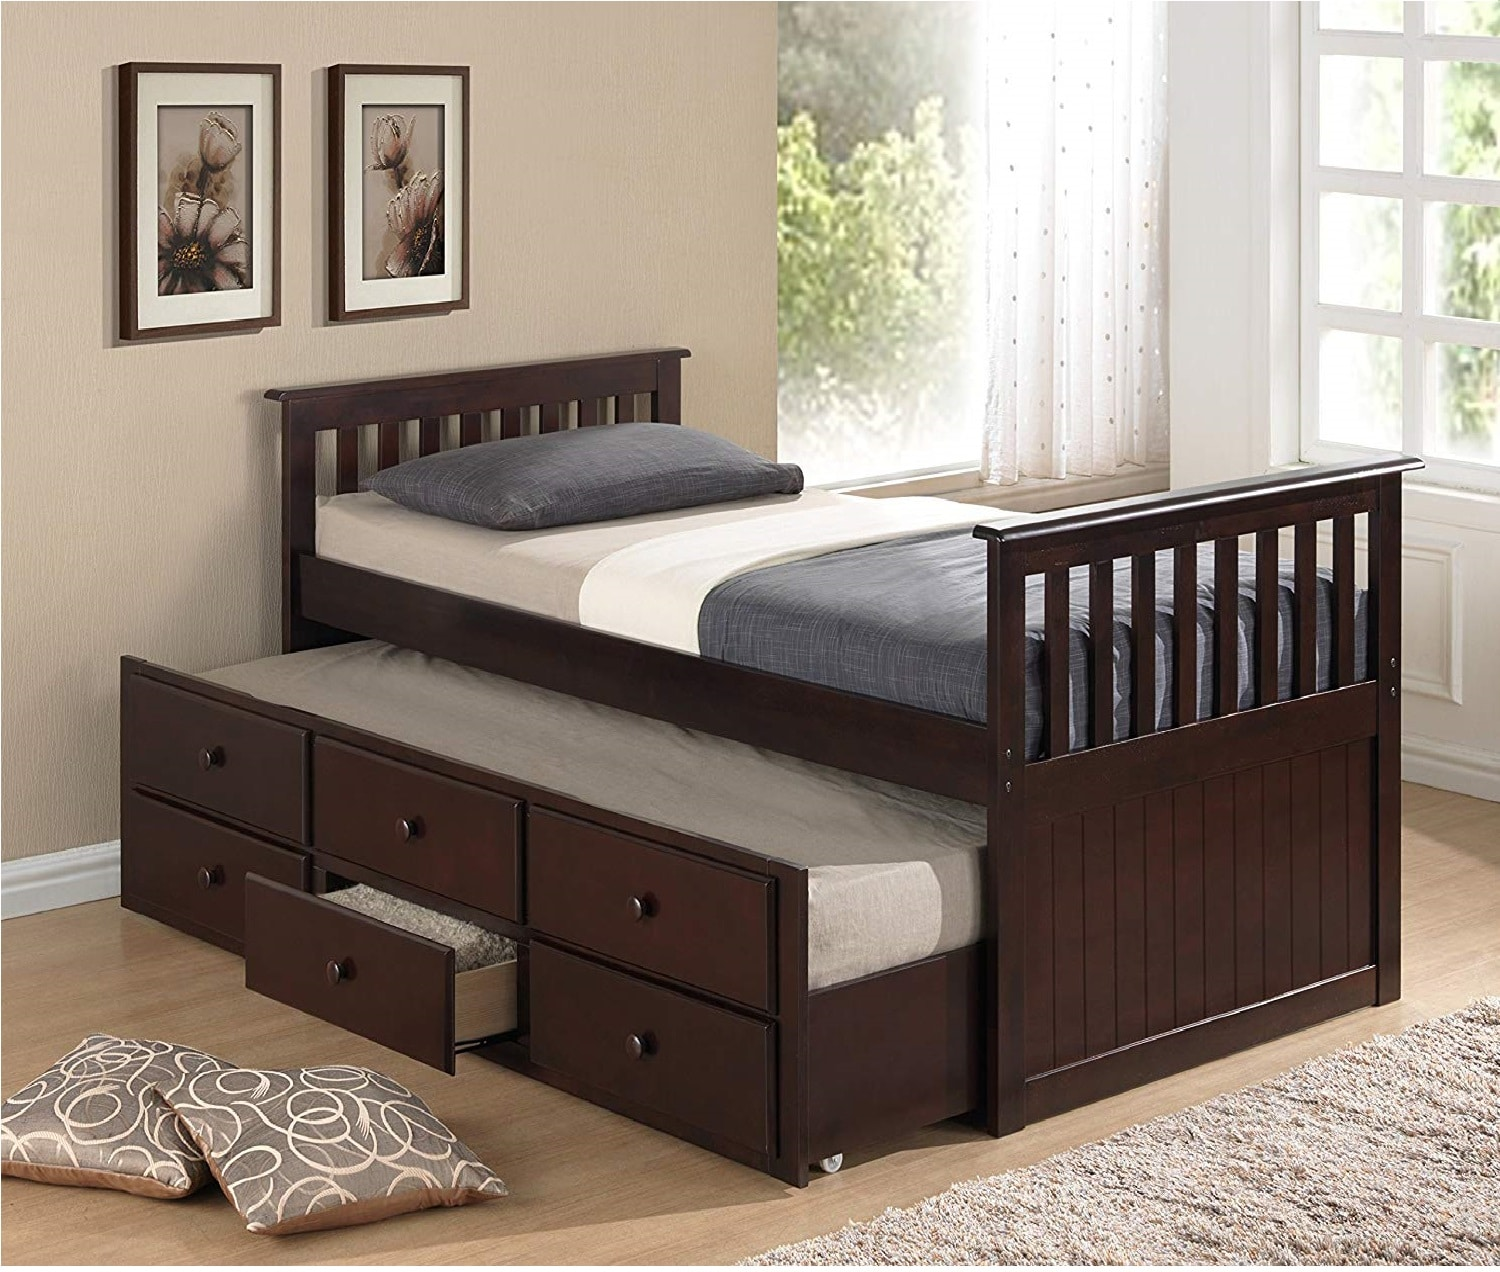 1.Broyhill Kids Marco Island Captain's Bed